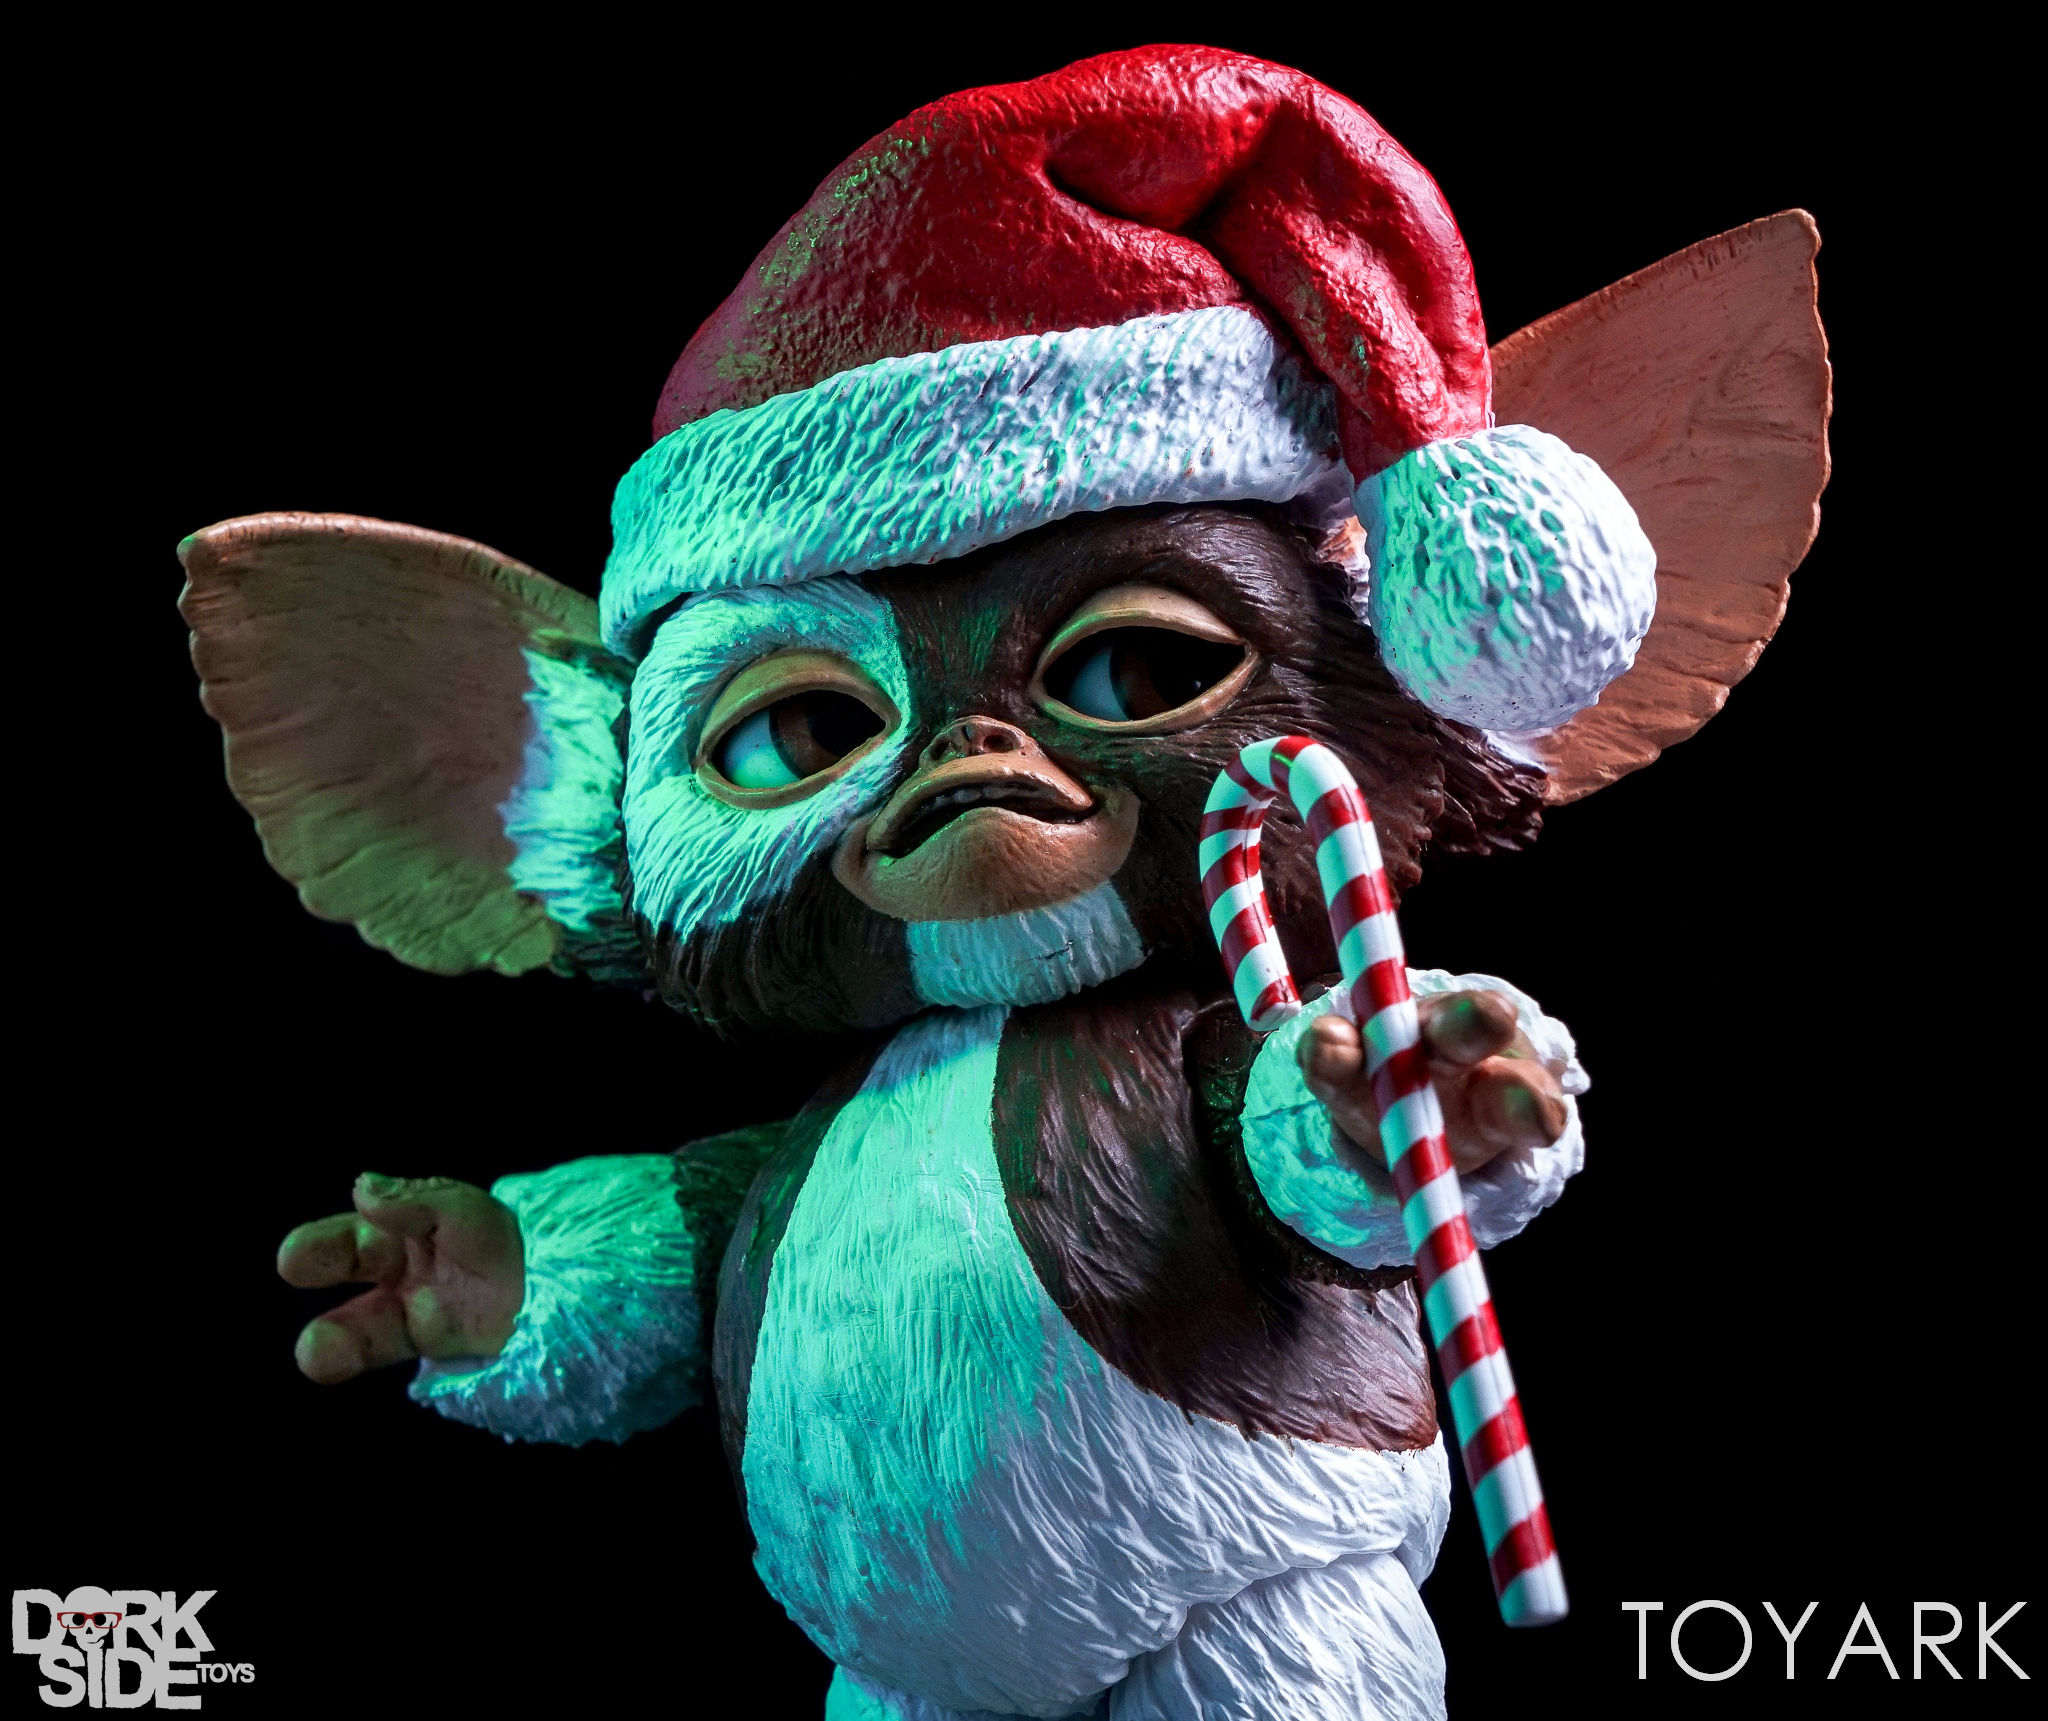 http://news.toyark.com/wp-content/uploads/sites/4/2017/04/NECA-Gremlins-Ultimate-Gizmo-029.jpg